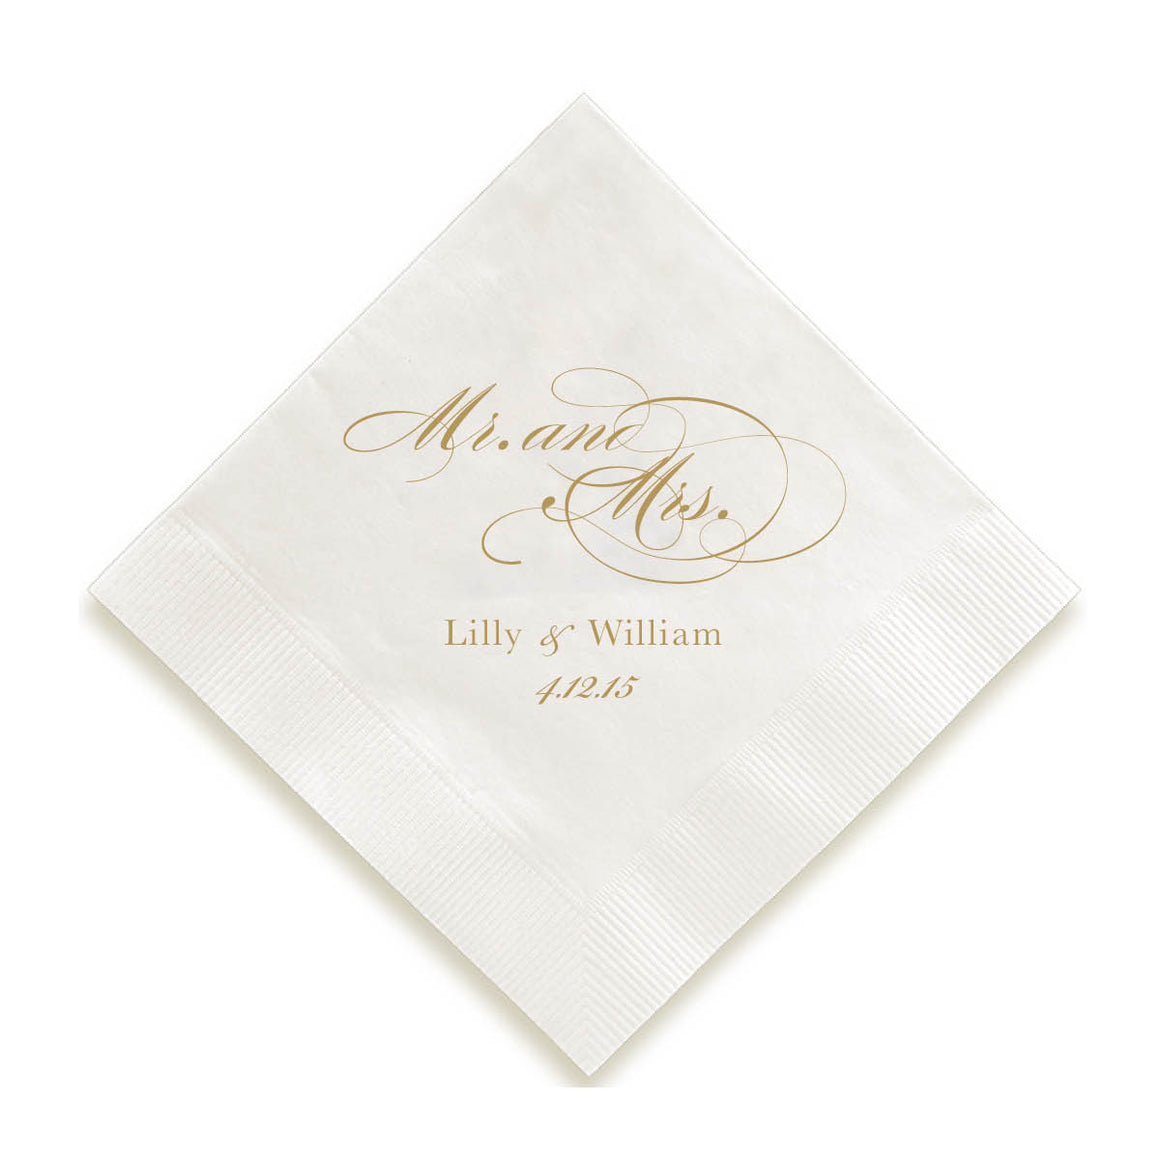 Mr. and Mrs. Foil Pressed Napkins